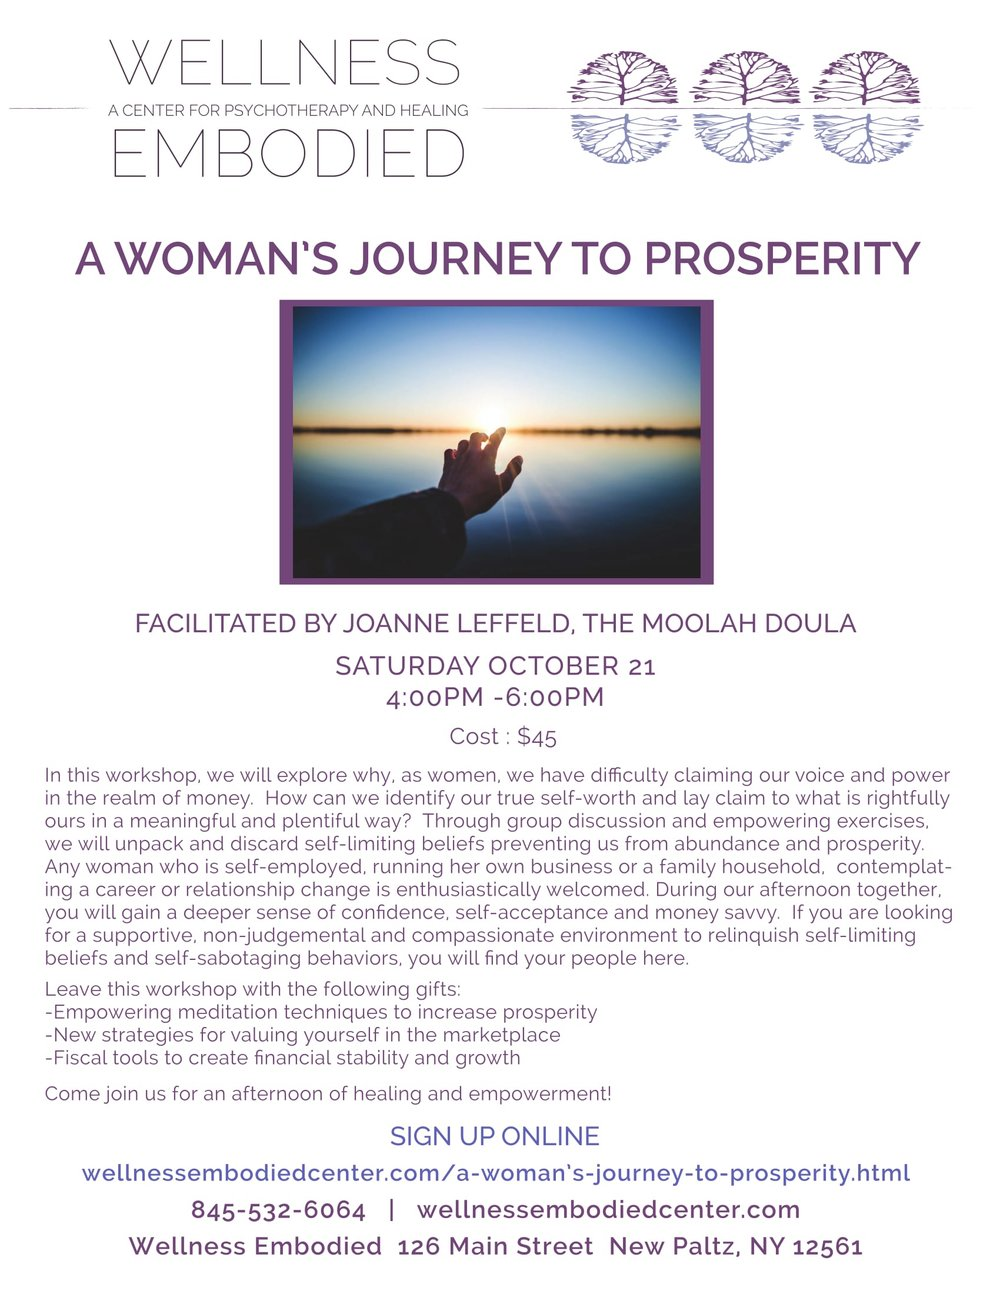 A WOMAN'S JOURNEY TO PROSPERITY flyer-1.jpg